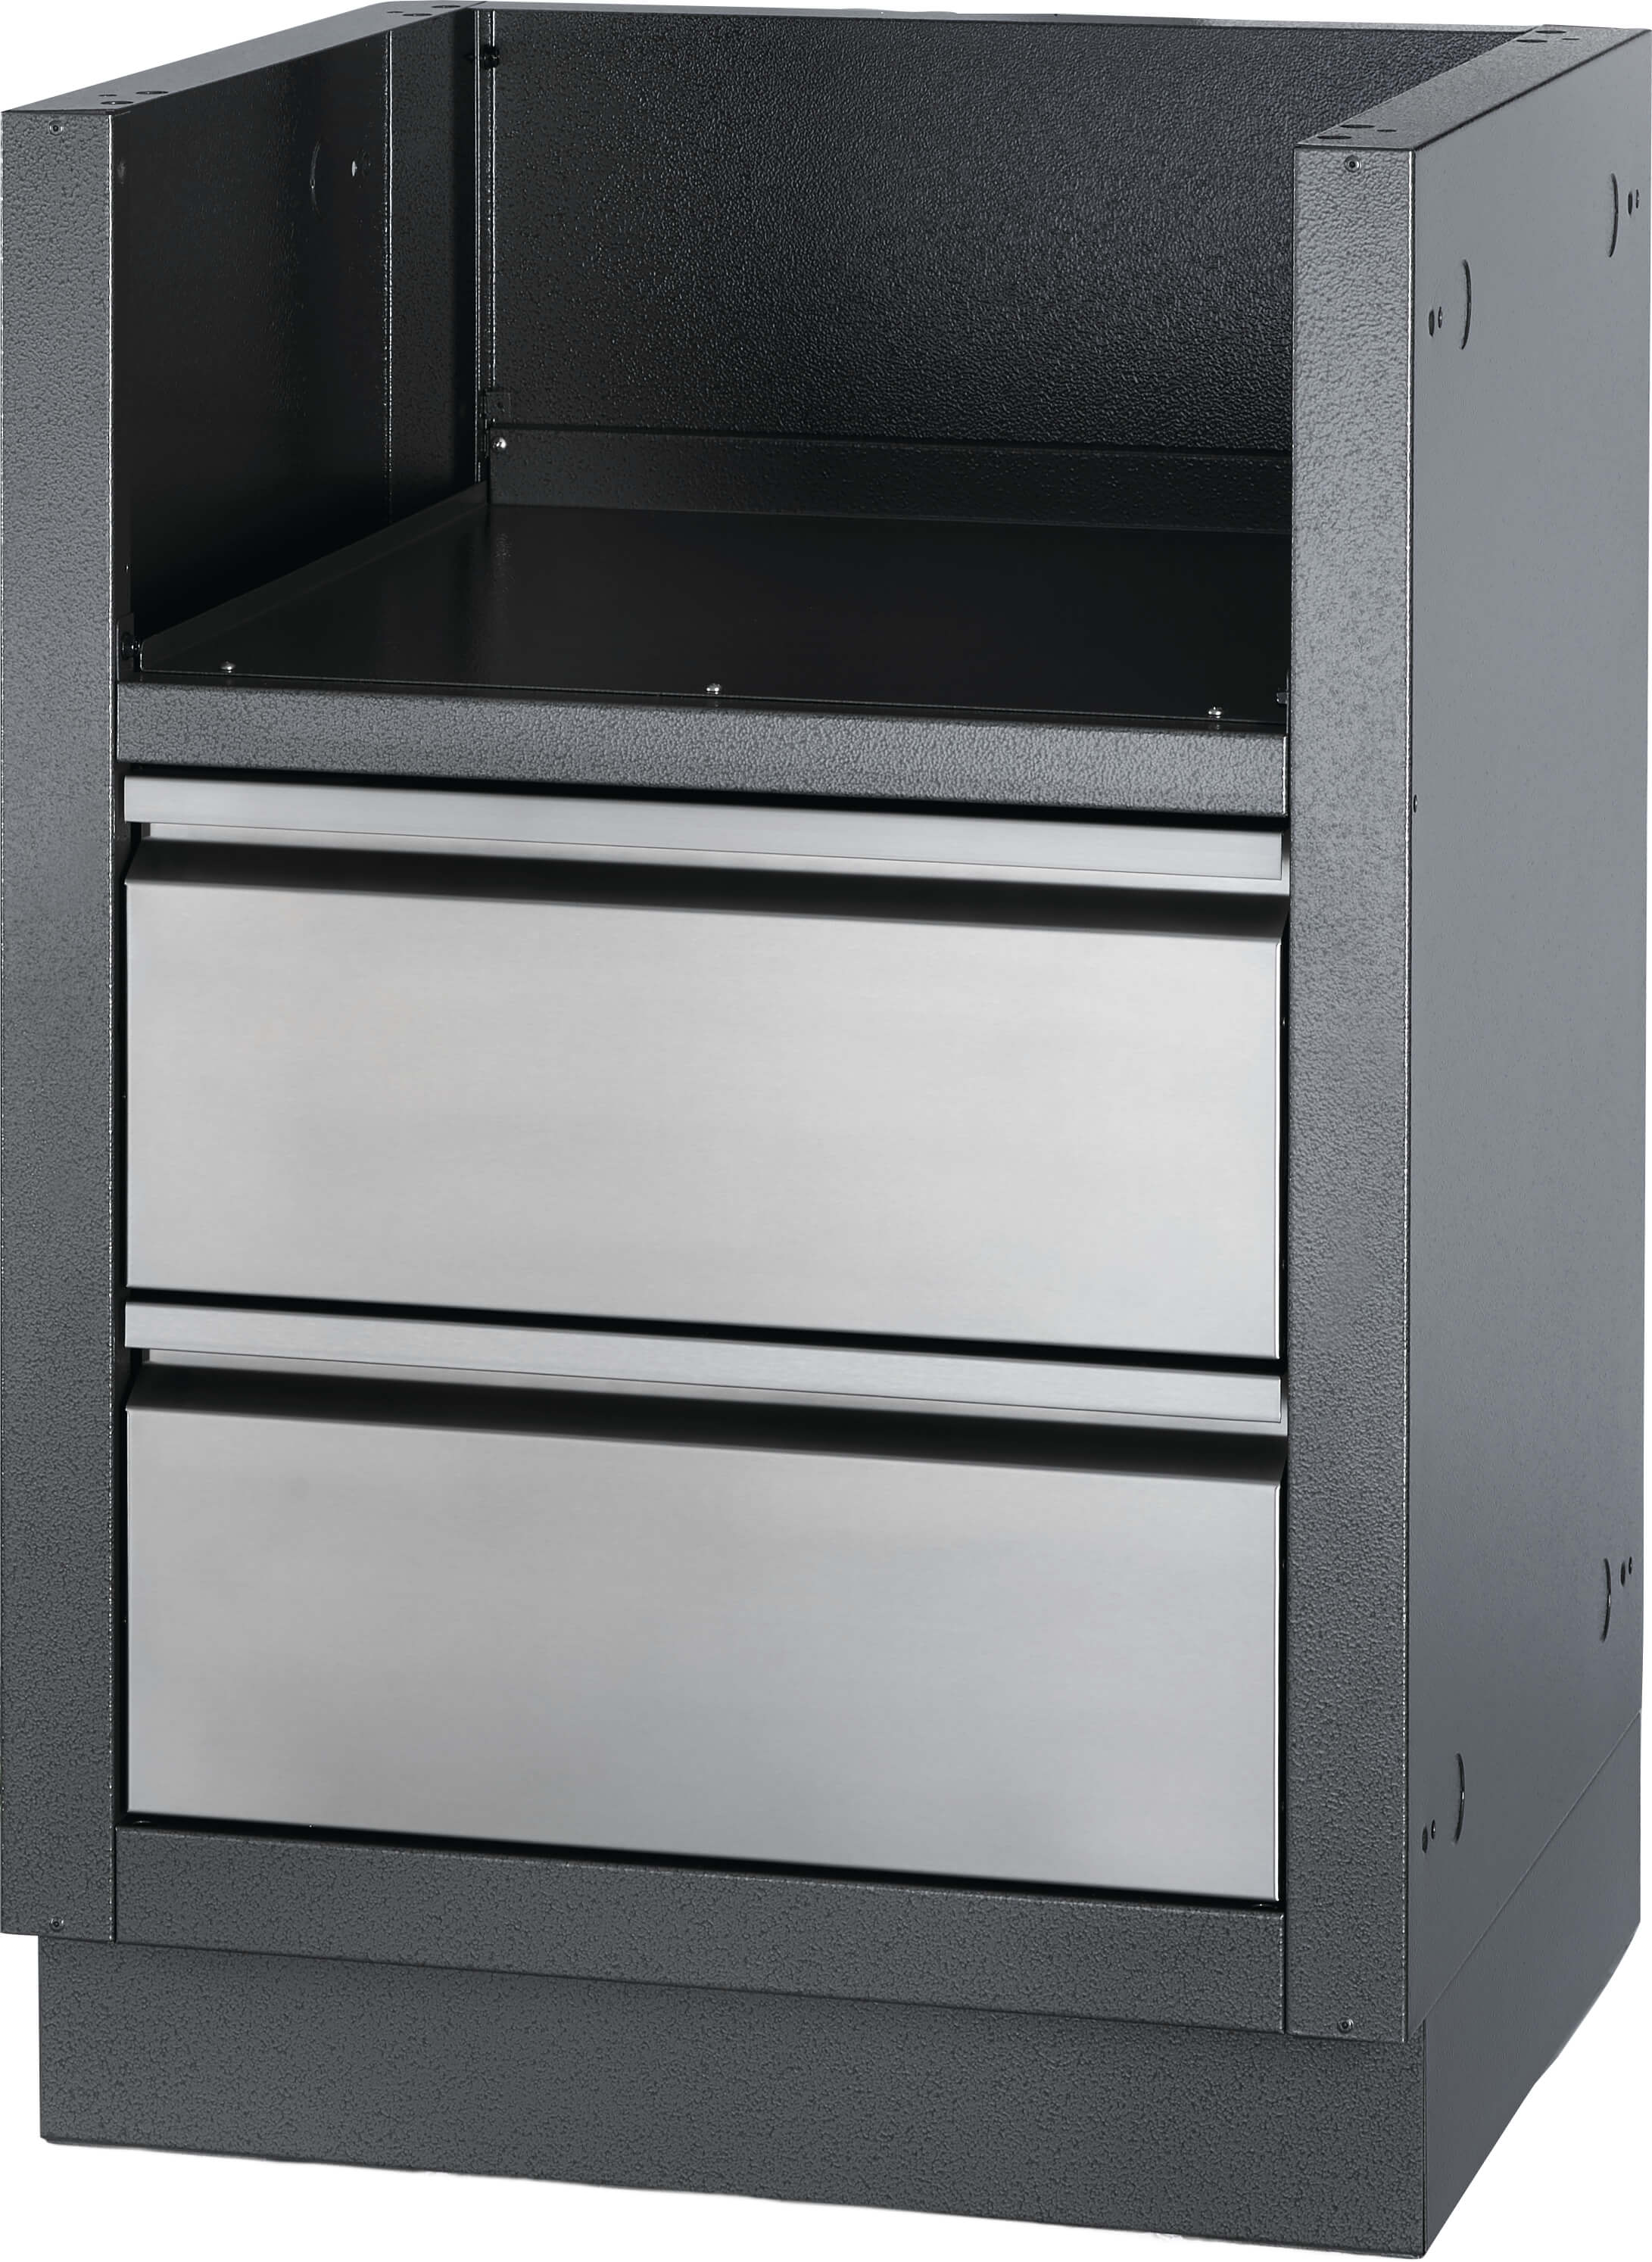 OASIS™ Under Grill Cabinet for Built-in 700 Series Dual Burners